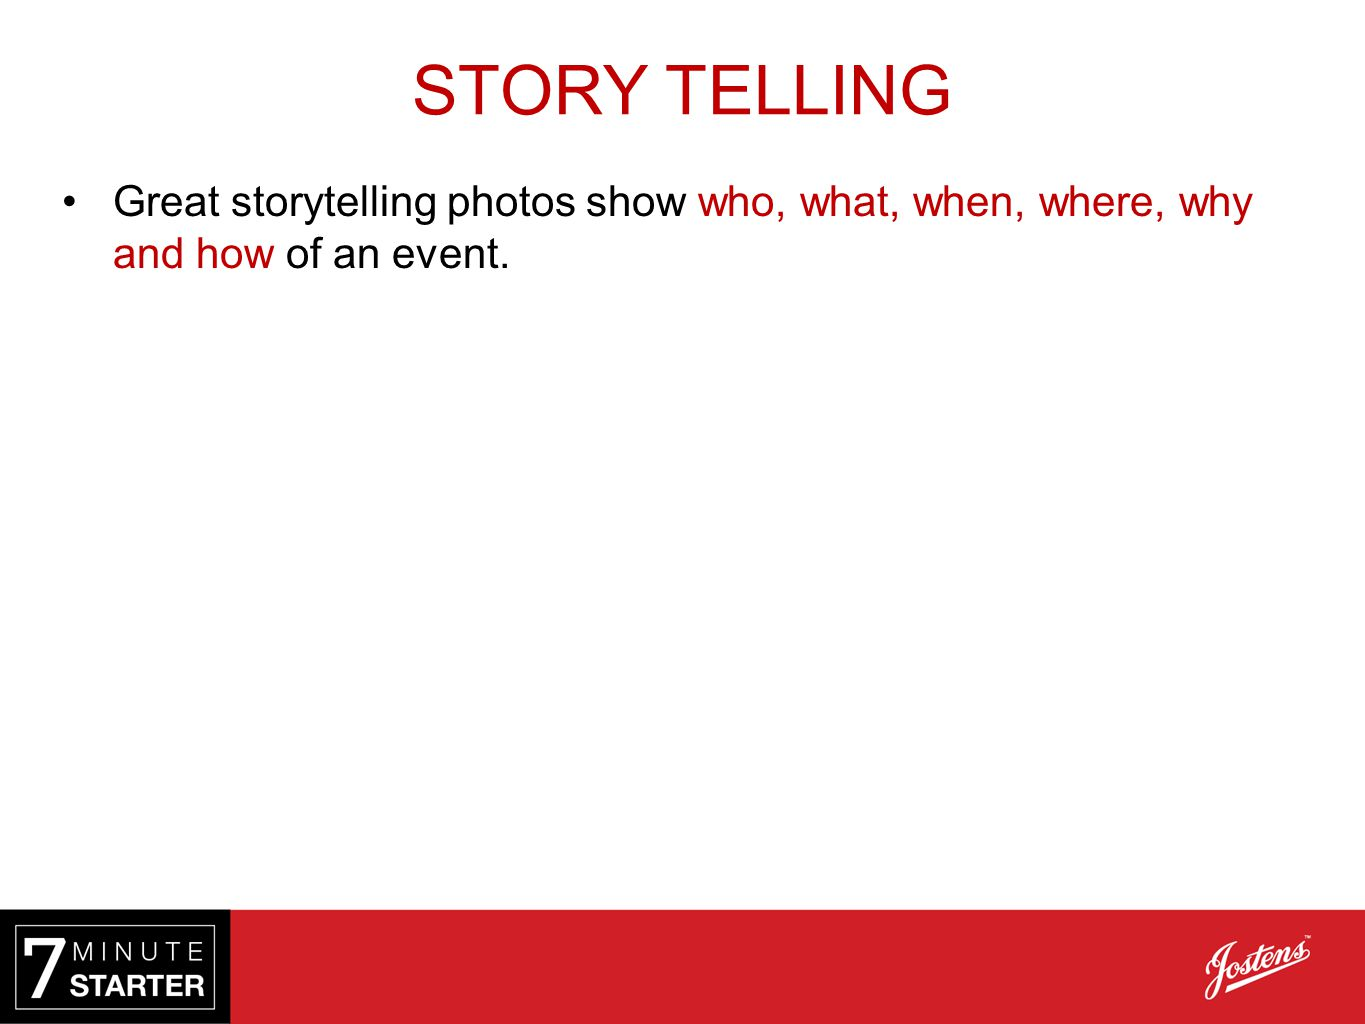 STORY TELLING Great storytelling photos show who, what, when, where, why and how of an event.